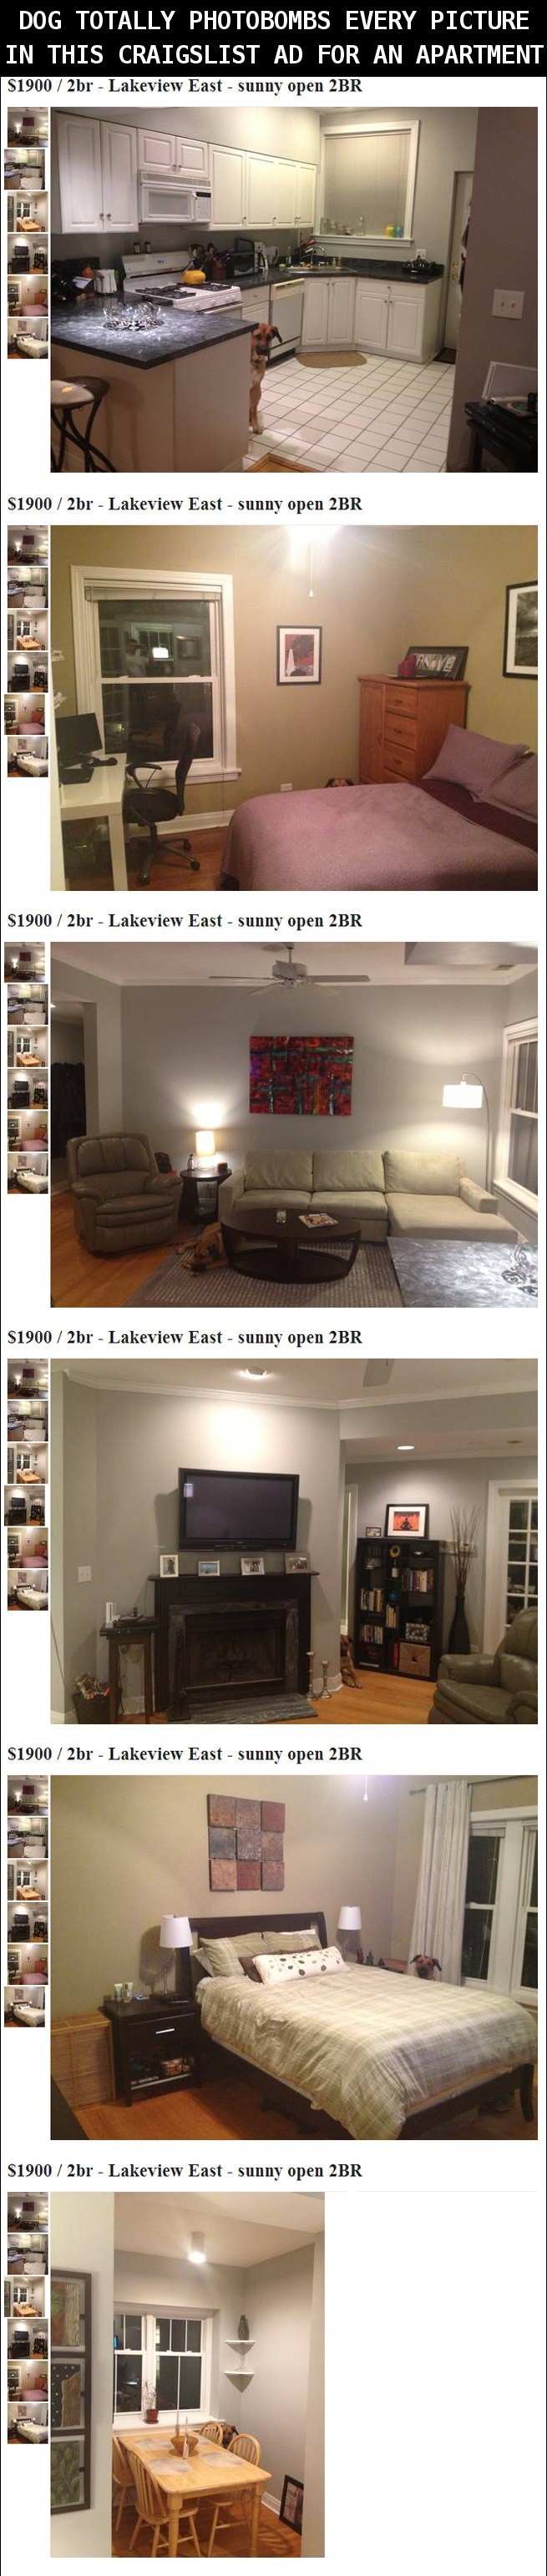 Dog photobombing Craigslist apartment listing in Lakeview and the dog is in every picture of the apartment.